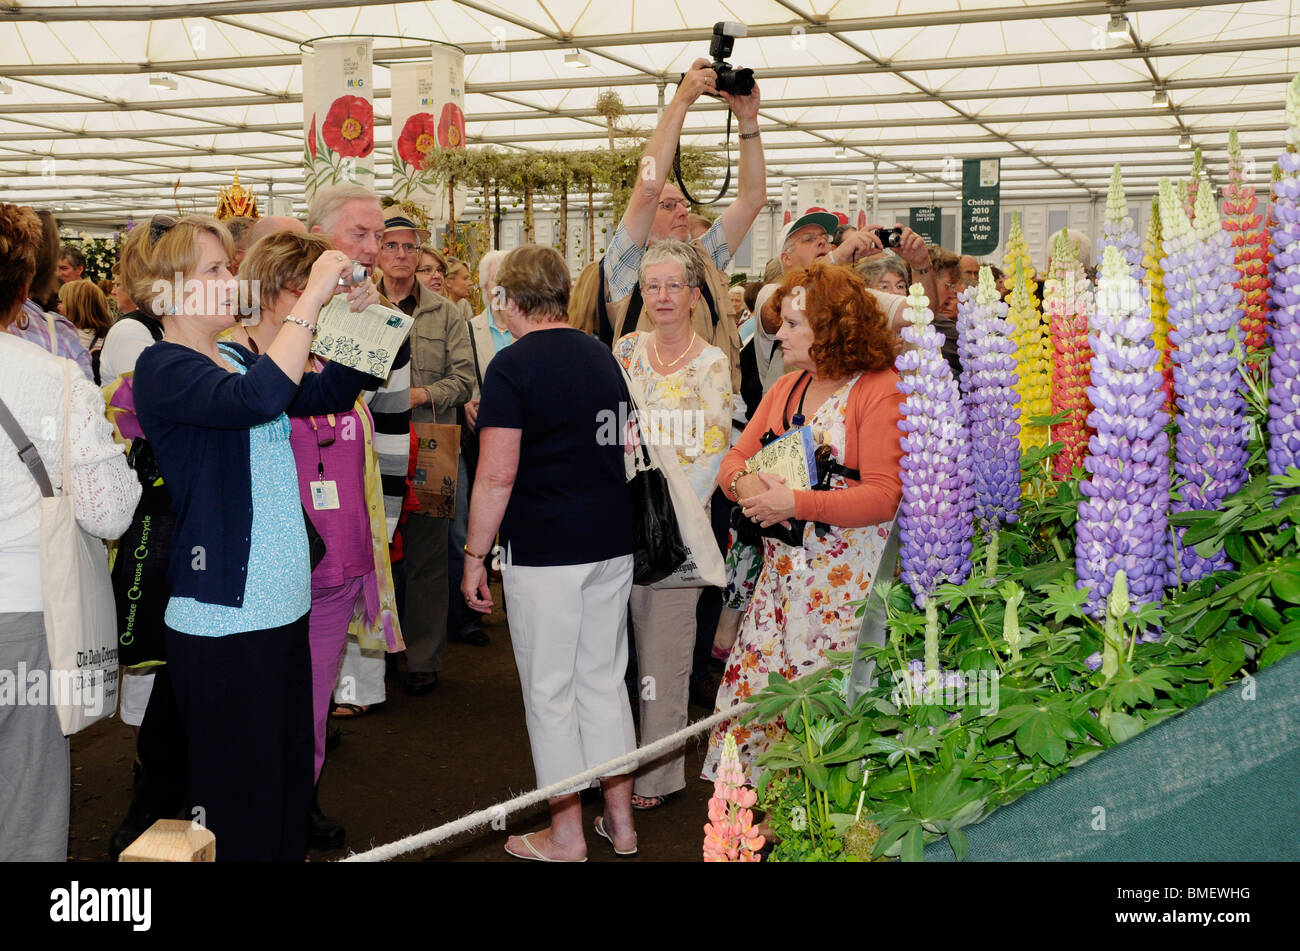 Annual Chelsea Flower Show - visitors gather around the award winning Lupin grower, Westcountry Nurseries. 2010. Stock Photo